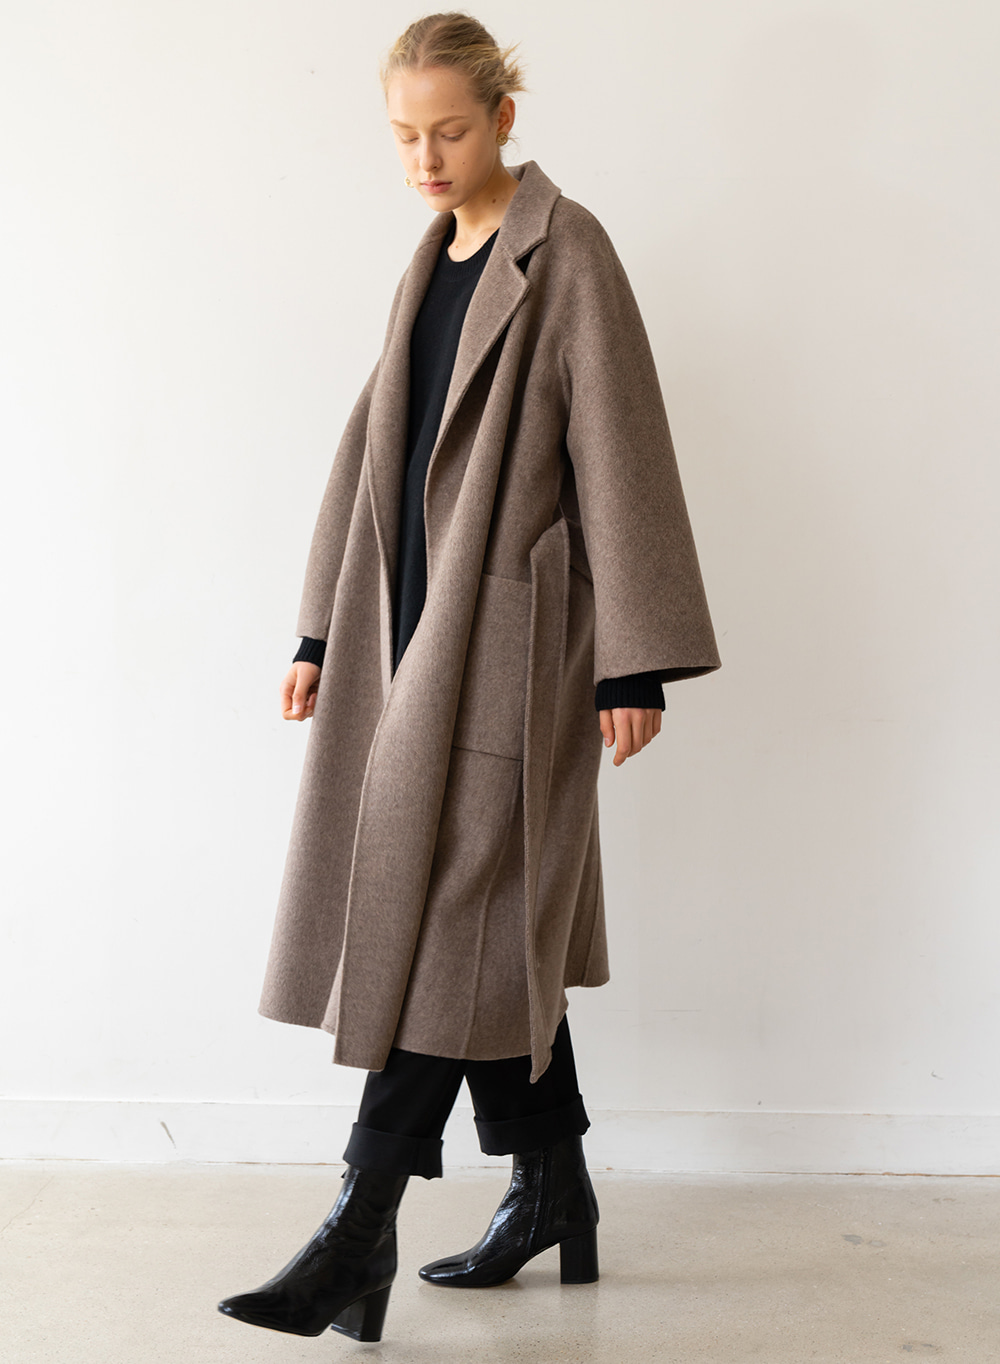 [ESSENTIAL] Handmade Herringbone Coat Brown